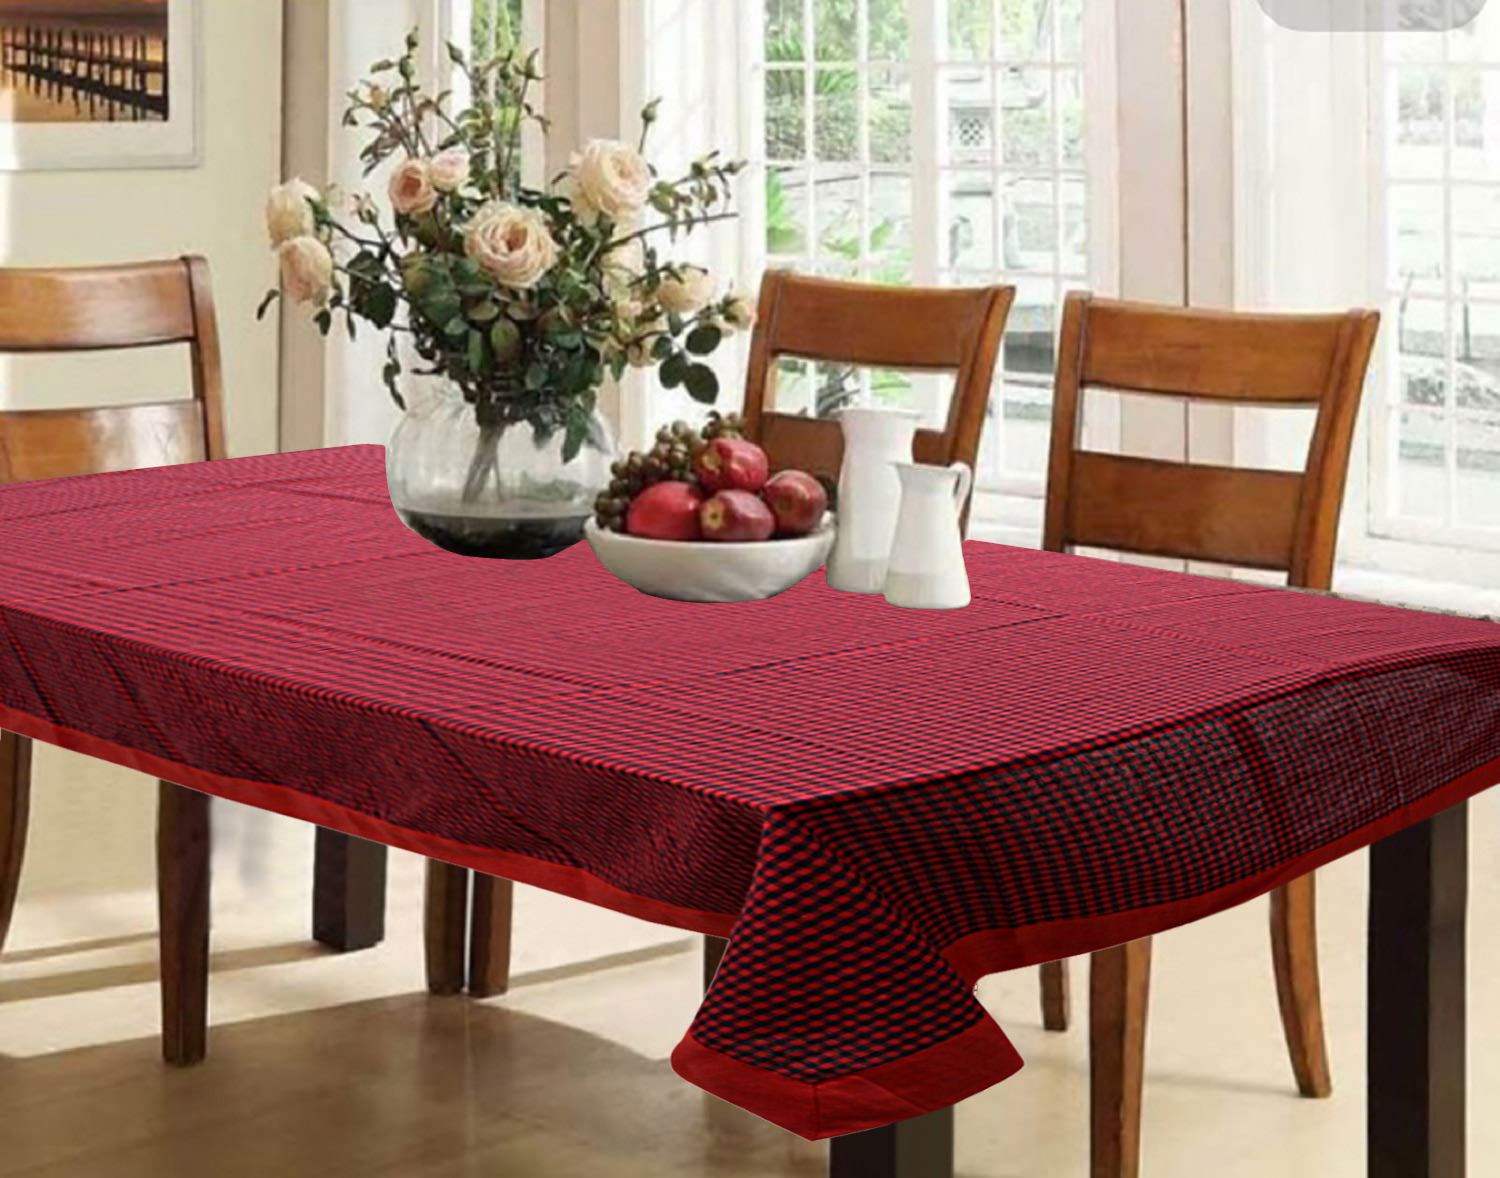 "Kuber Industries Checkered Design Cotton 6 Seater Dining Table Cover 60""x90"" (Maroon) - CTKTC40138"